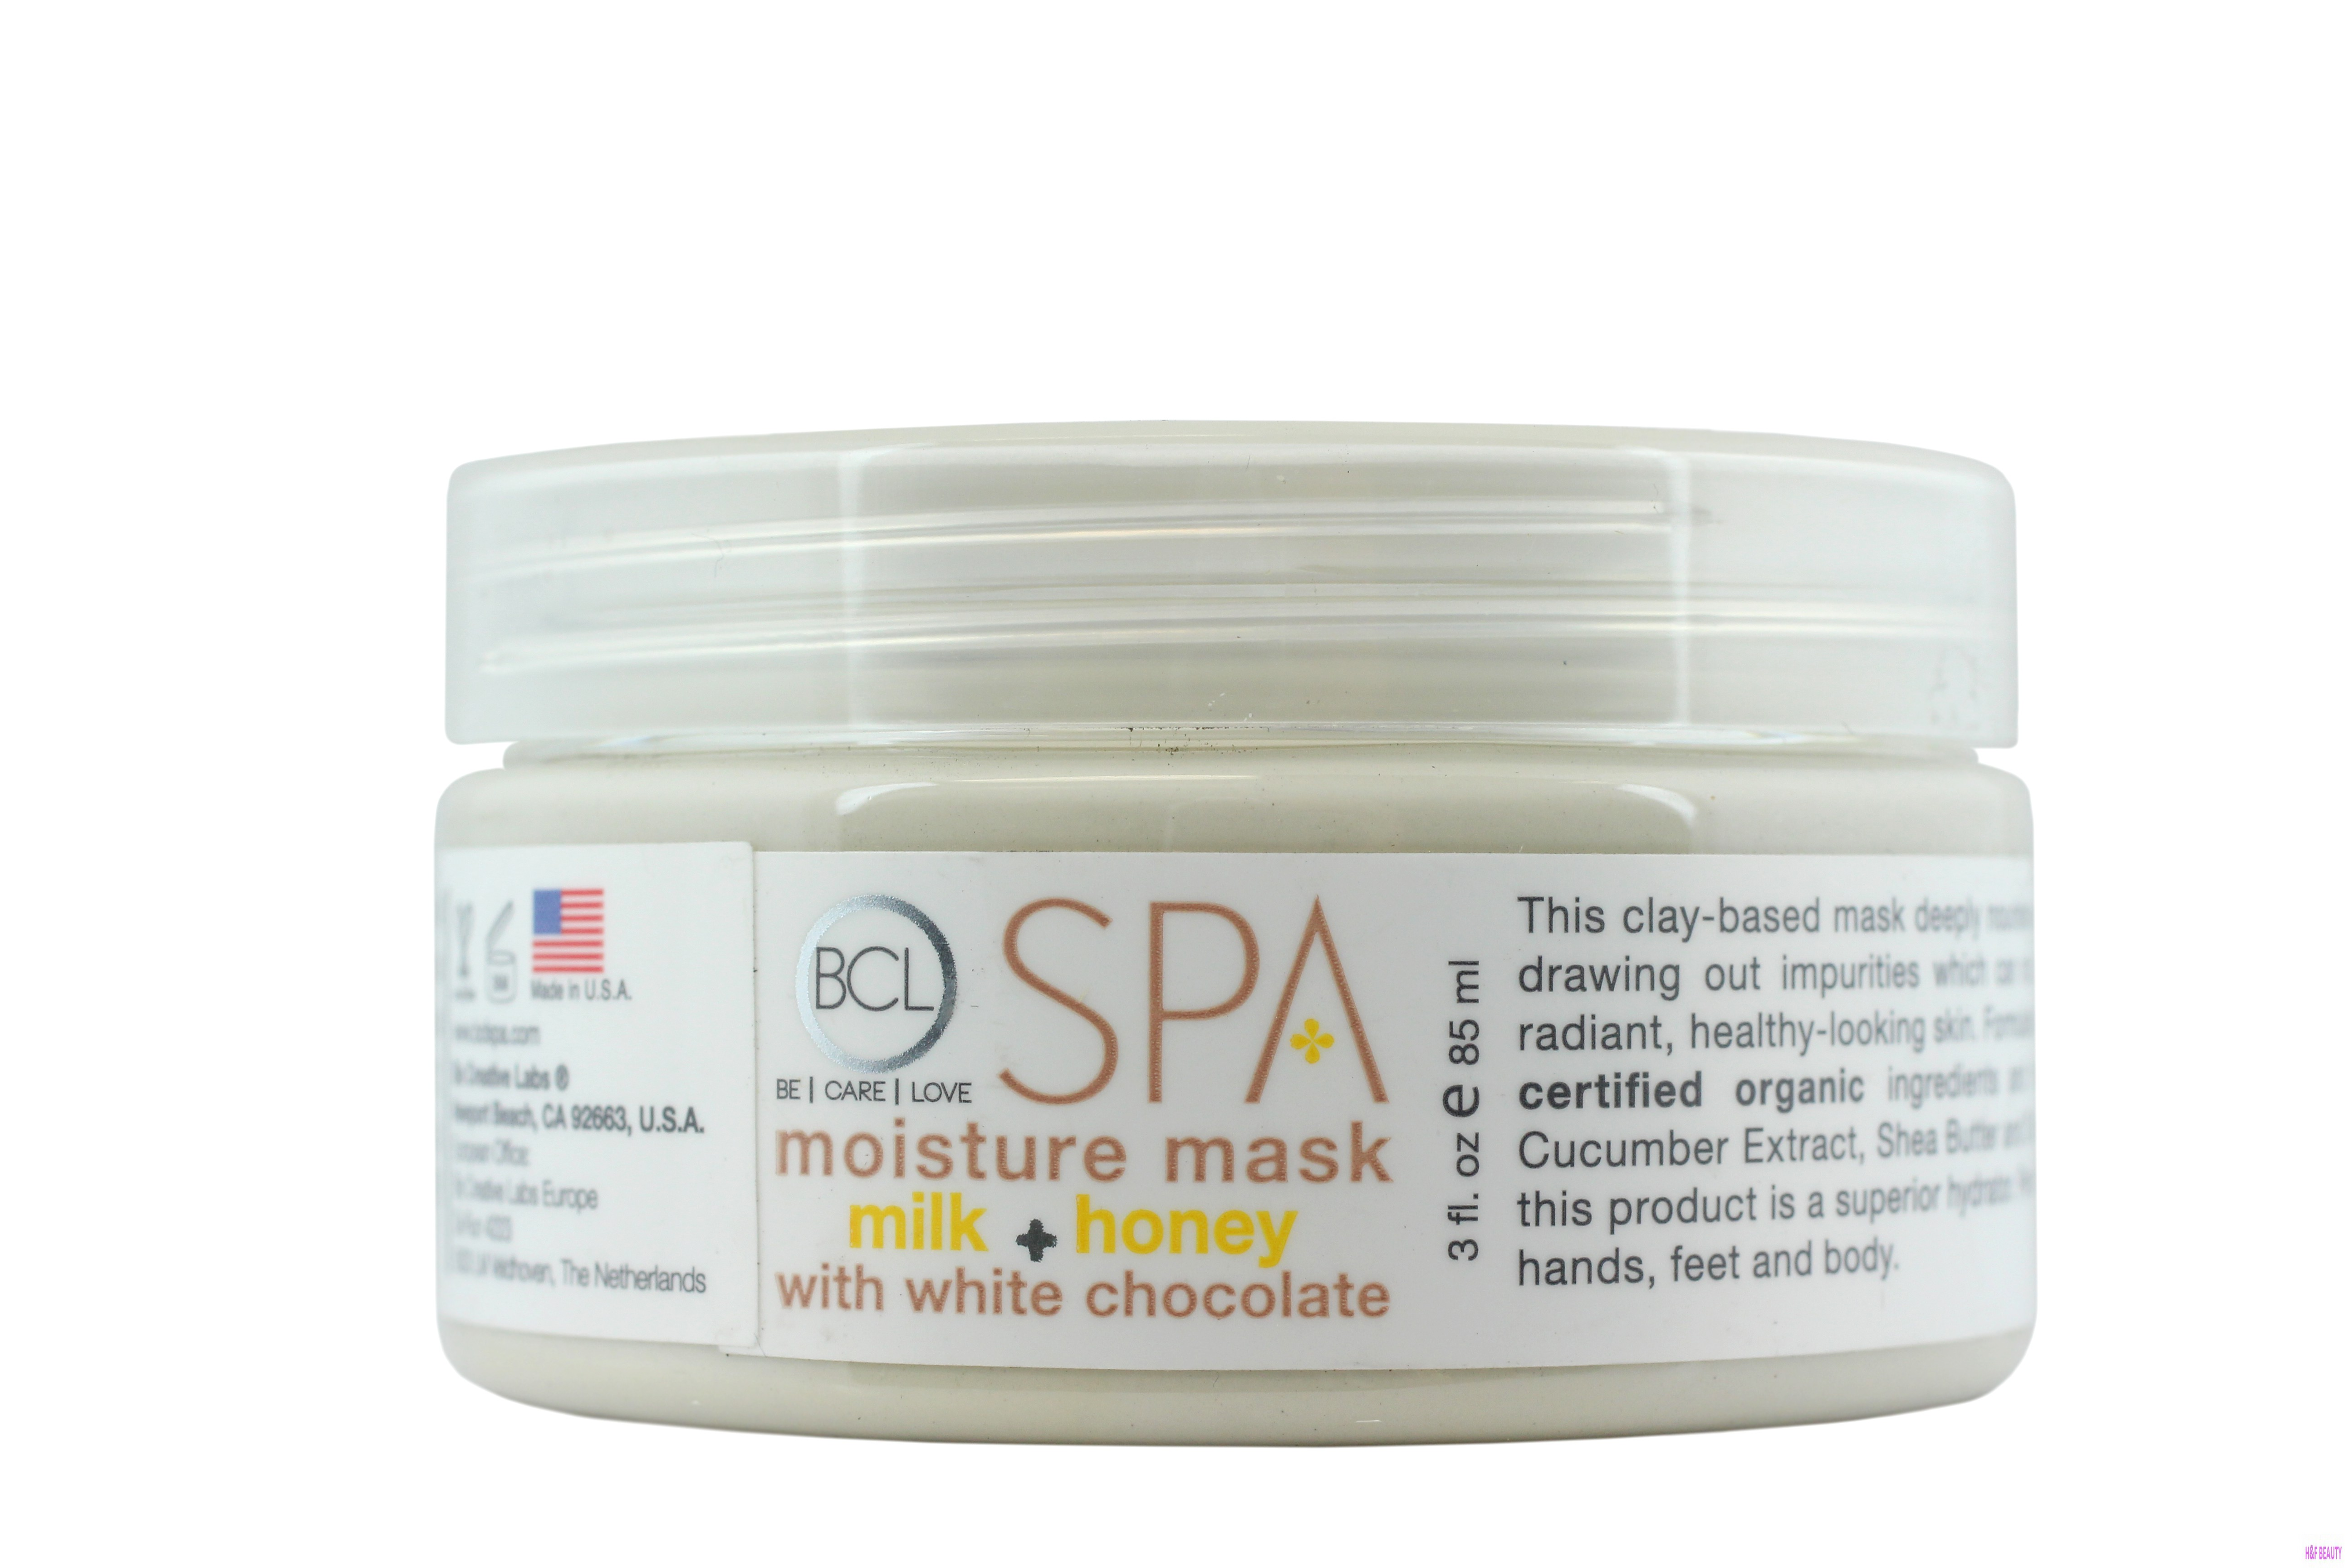 BCL Spa Milk + Honey with White Chocolat Moisture Mask